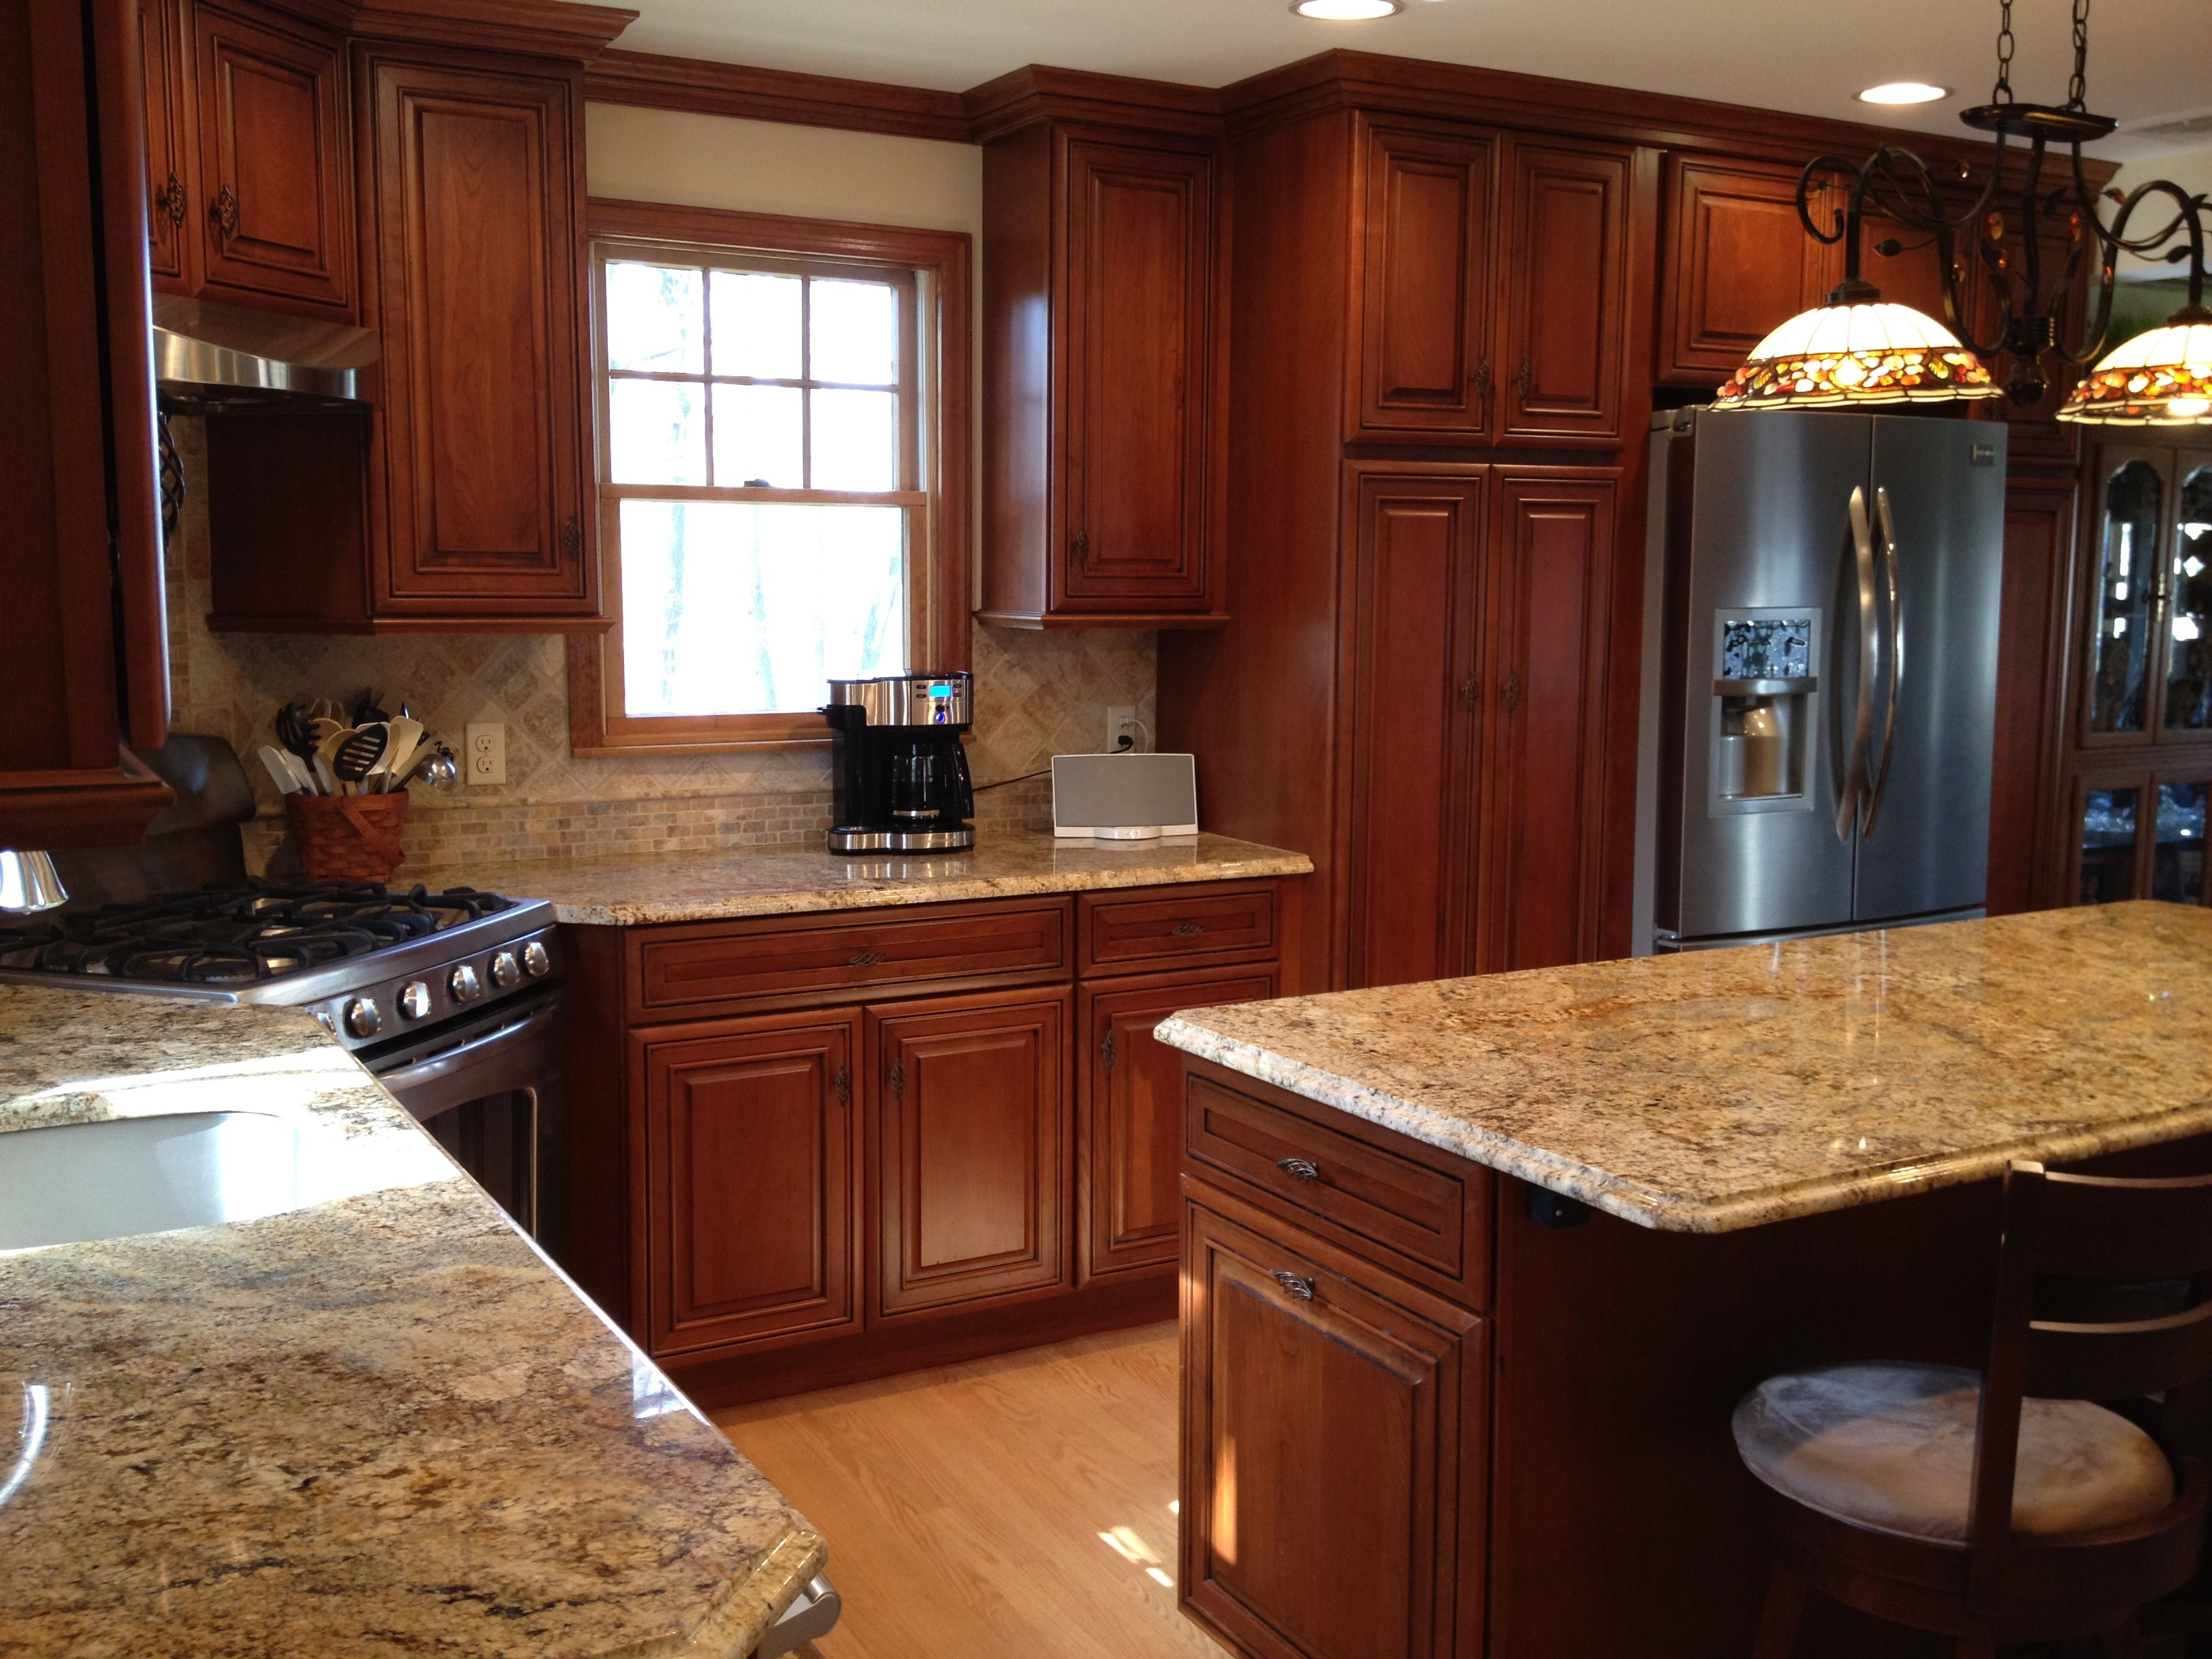 Home Design Cabinetry And Remodeling Ideas And Inspiration Delectable Kitchen Bathroom Remodeling Ideas Inspiration